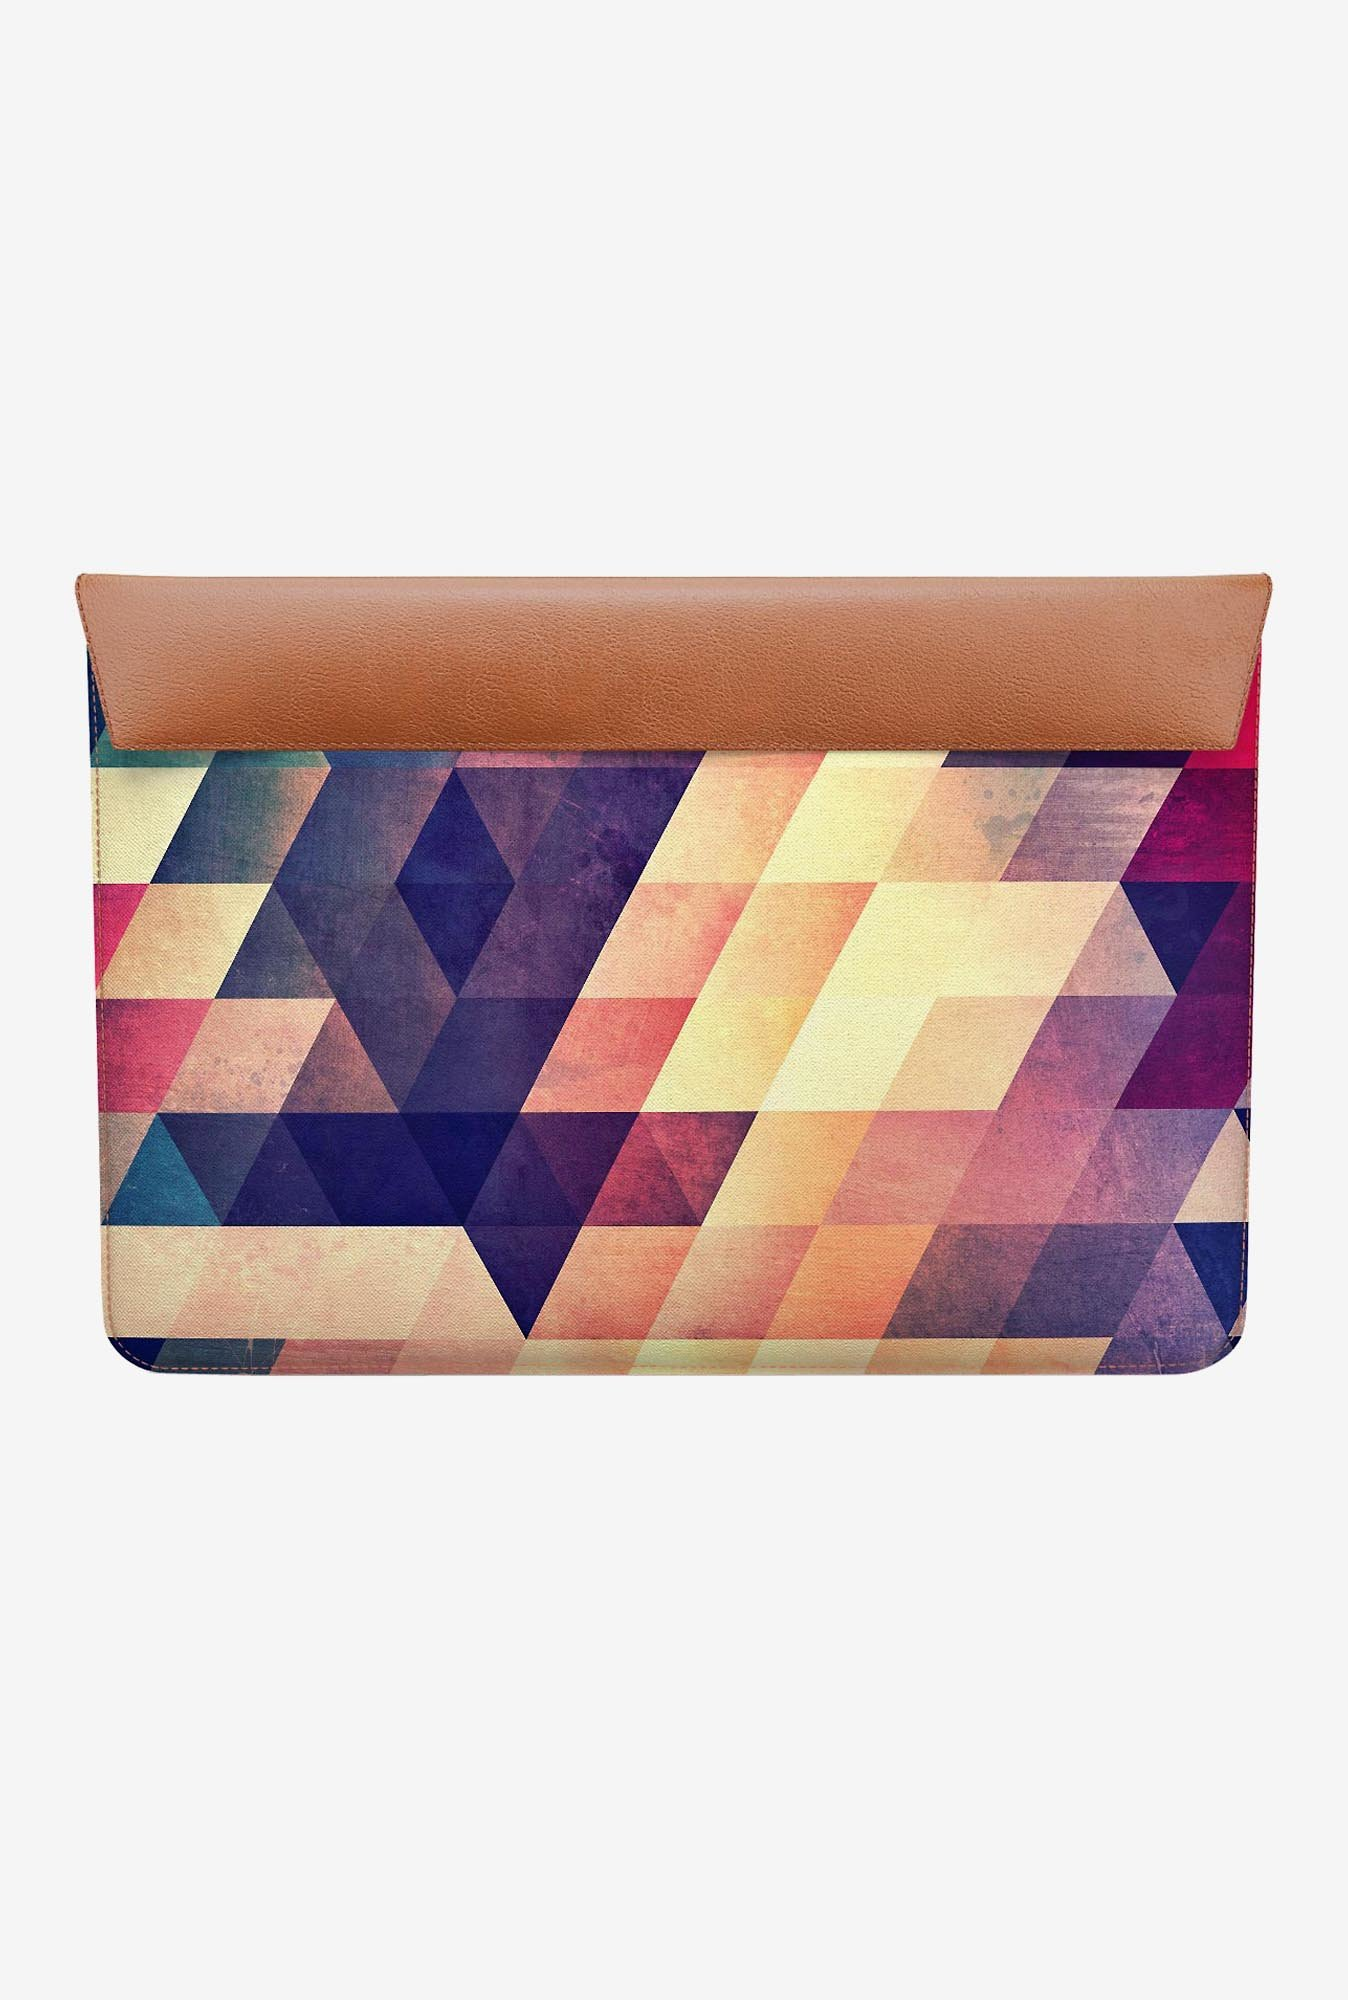 DailyObjects Tppp MacBook Air 11 Envelope Sleeve